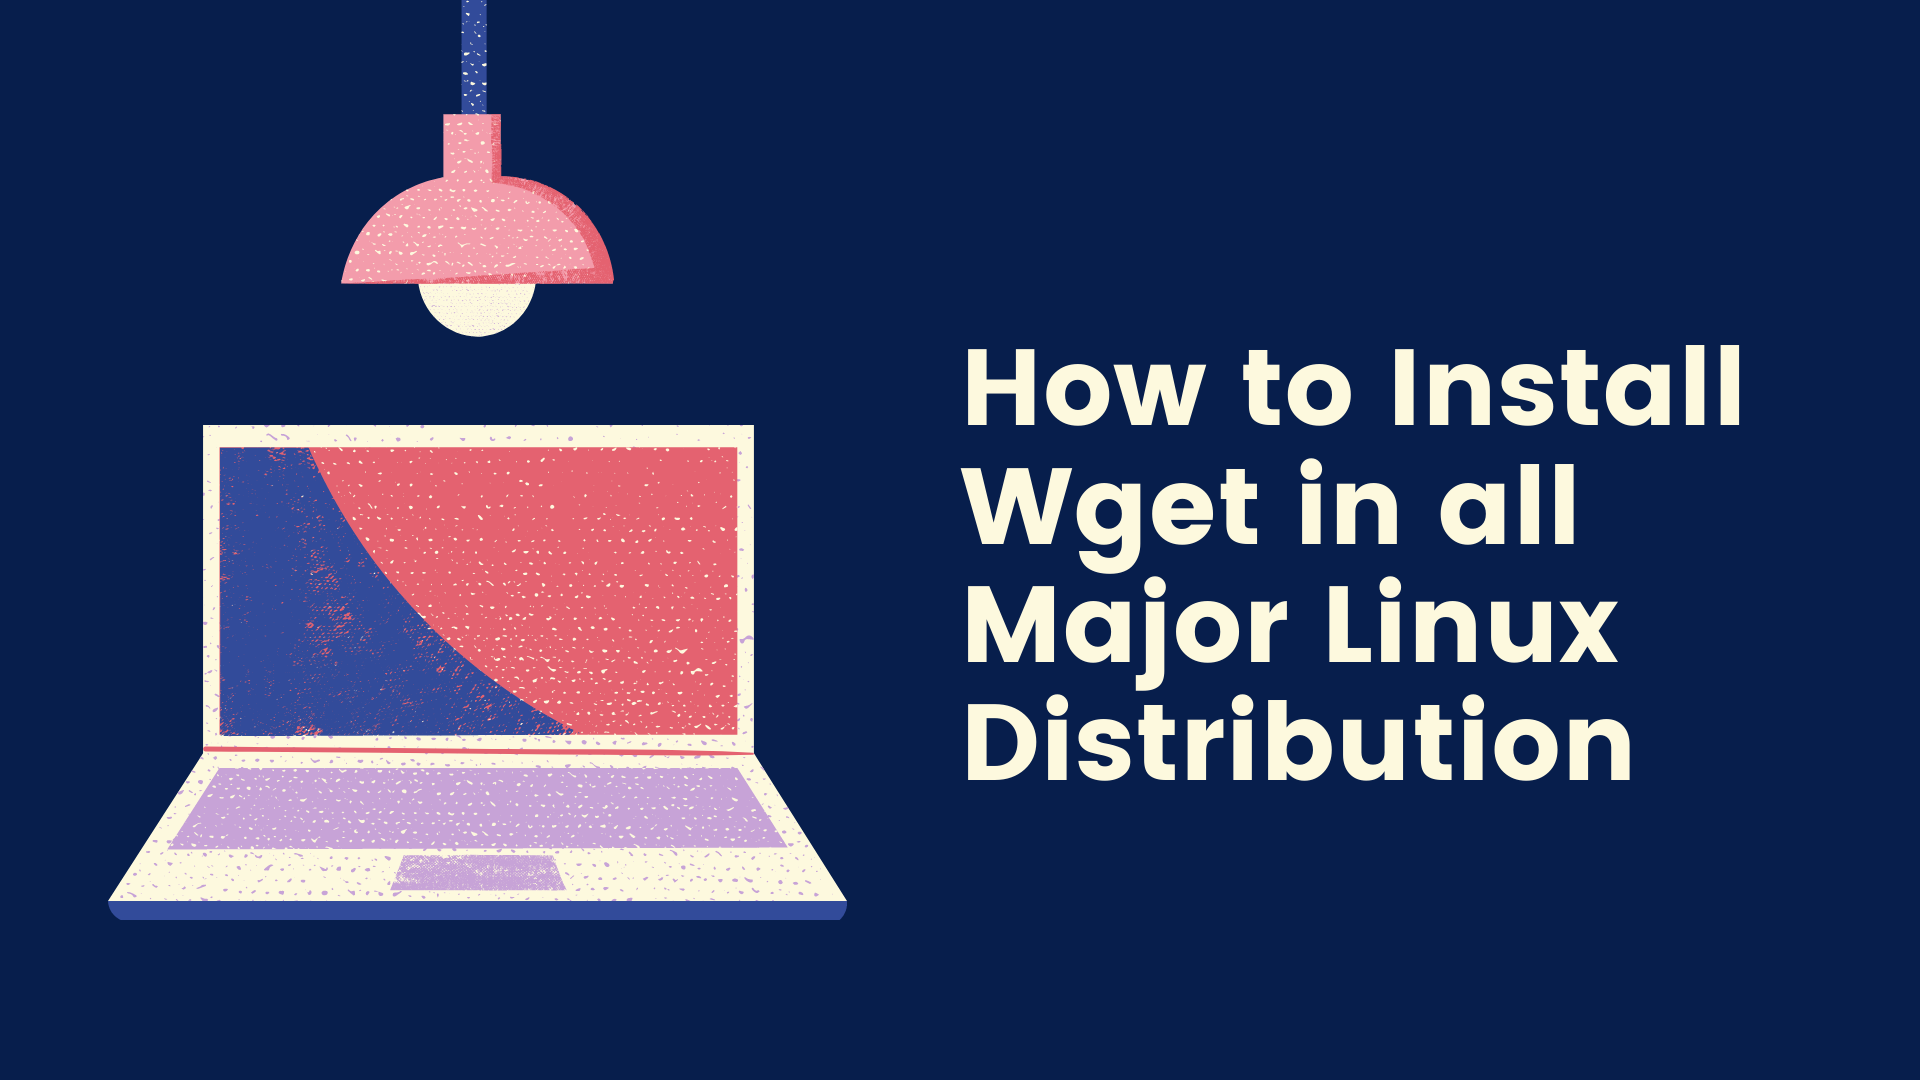 How to Install Wget in all Major Linux Distribution